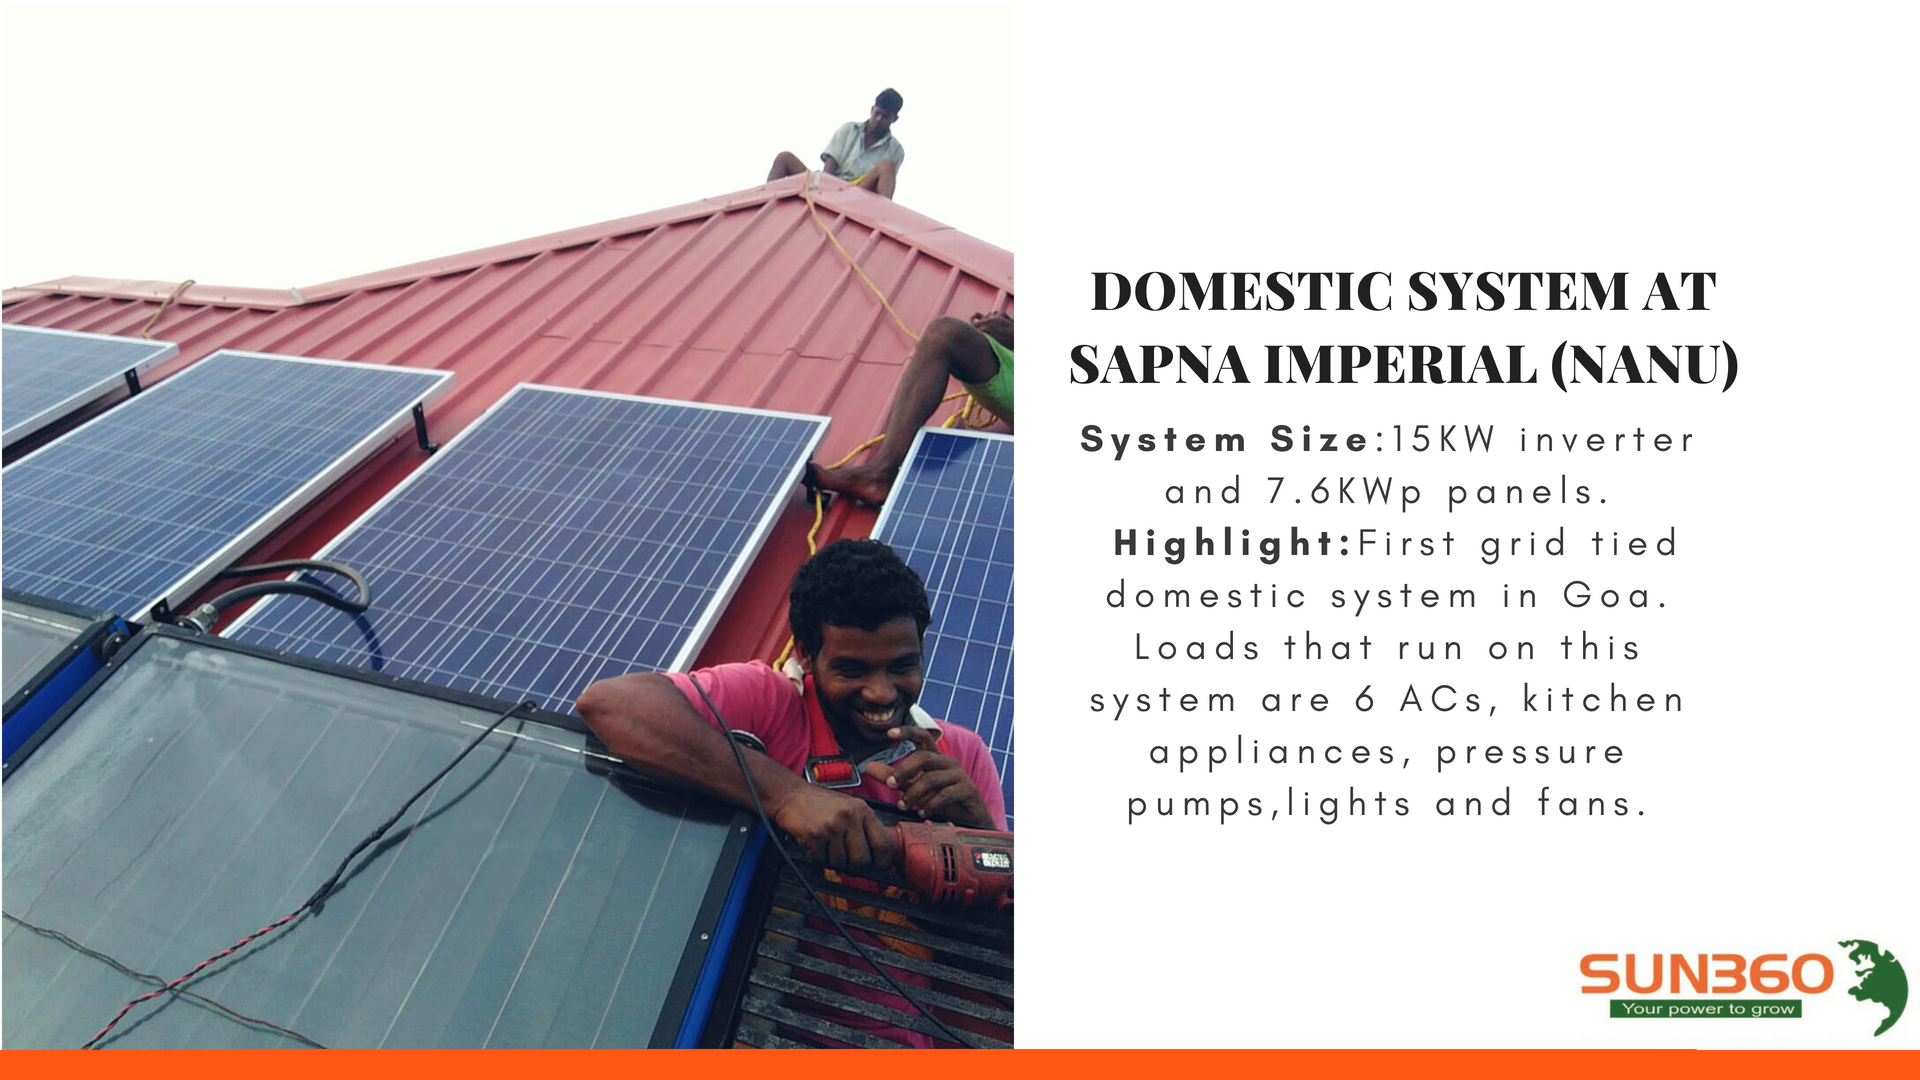 Domestic System at Sapna Imperial